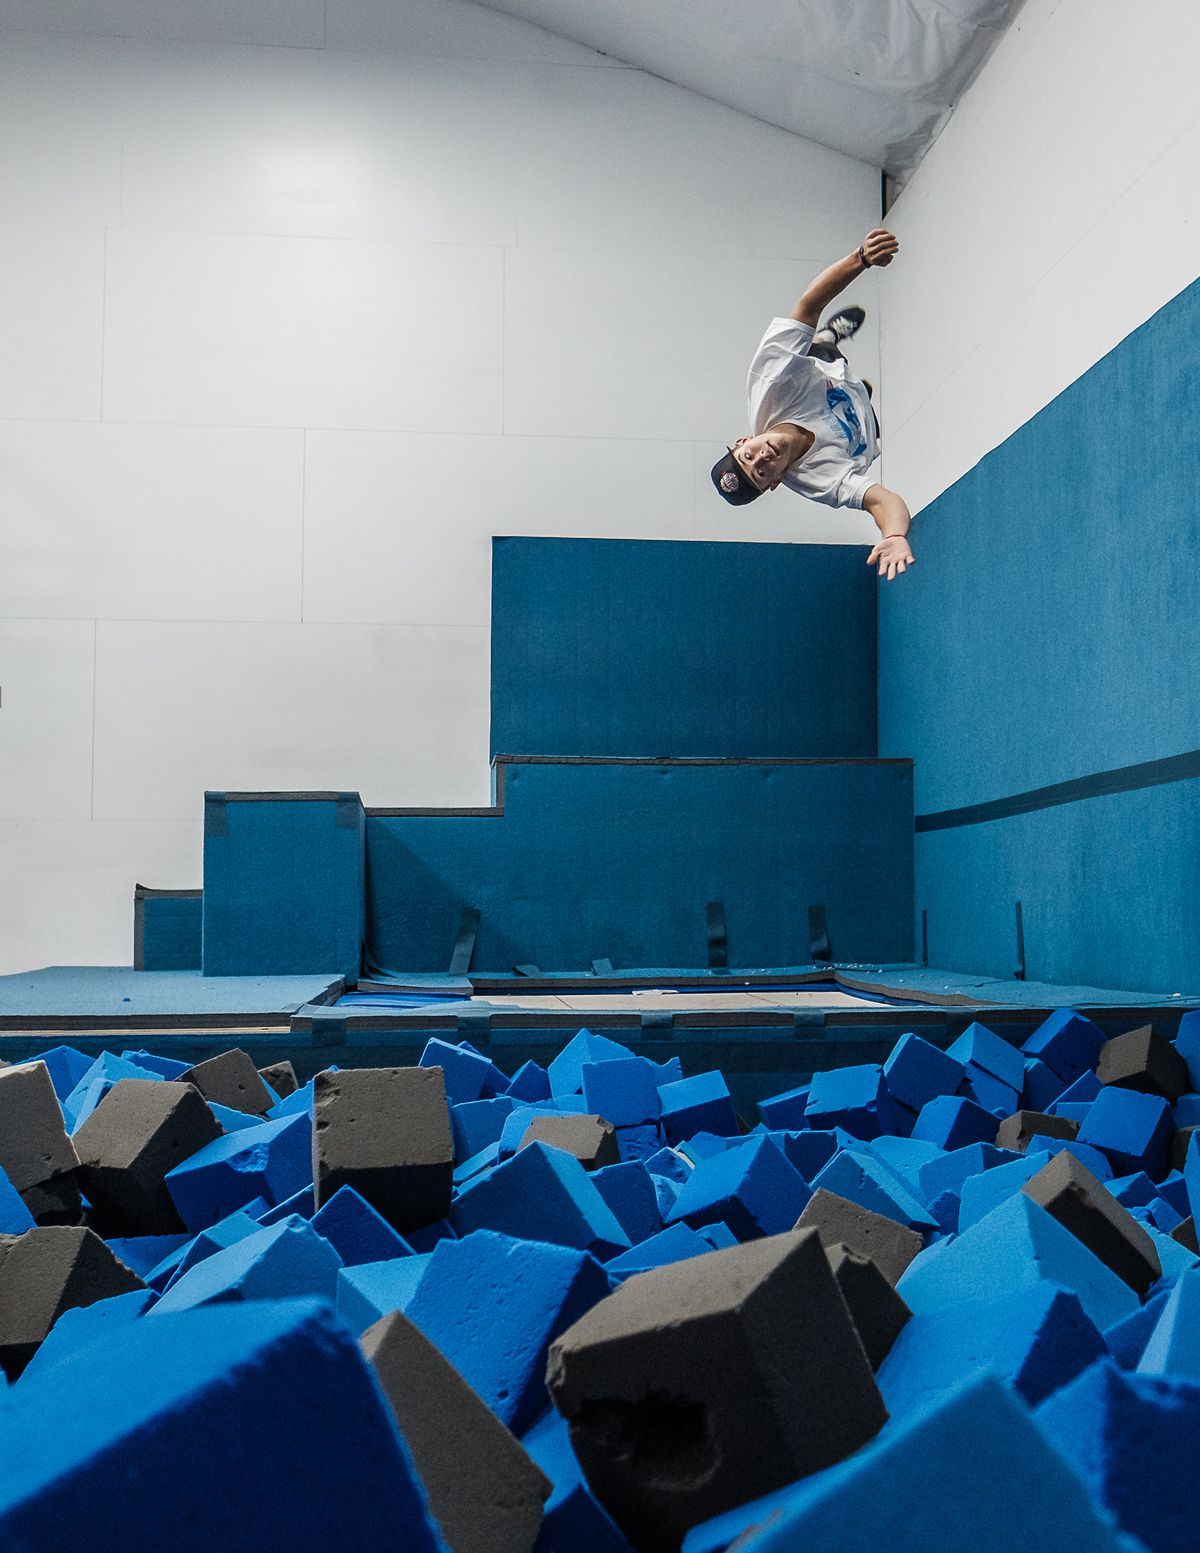 """Kai Beckstrand demonstrates parts of his training regimen at his family's gym in St. George on Saturday, August 28, 2021. Beckstrand's efforts landed the 15-year-old in the finals of the competition television show """"American Ninja Warrior."""""""